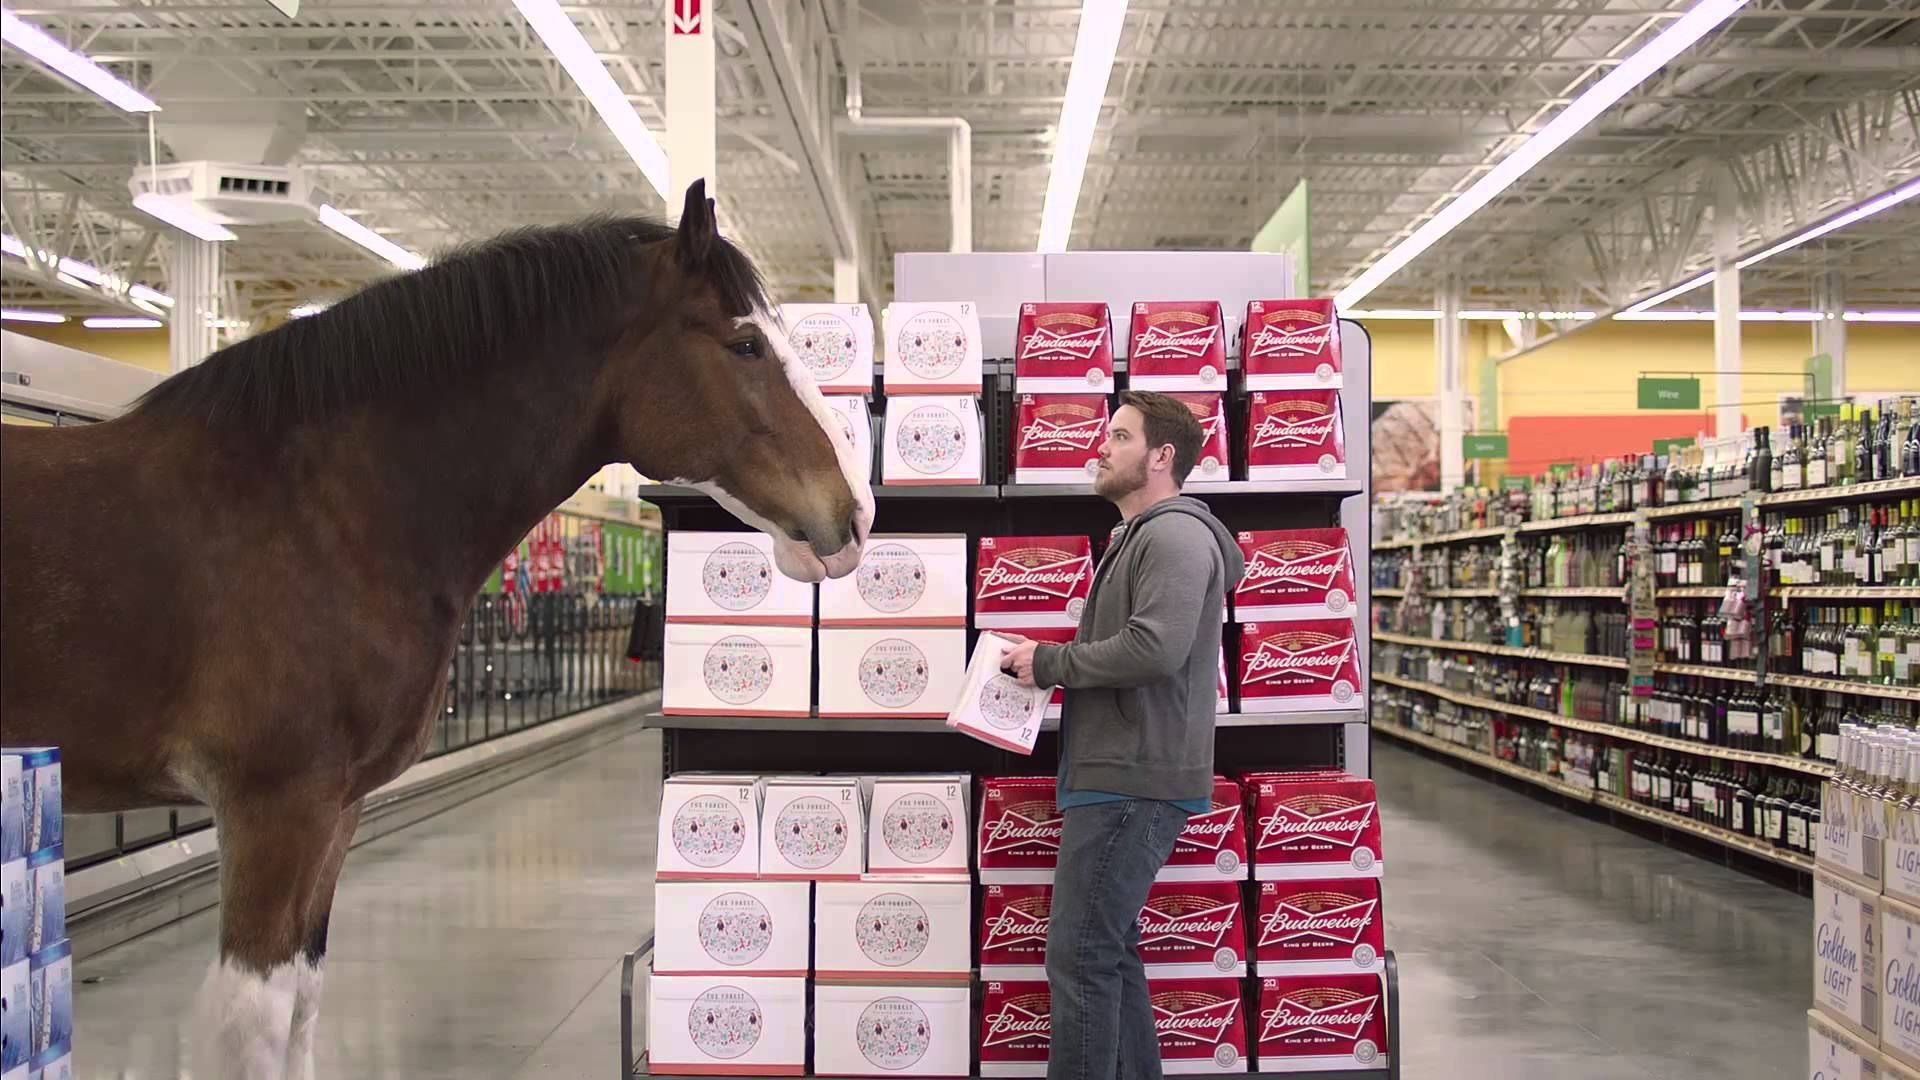 2015 Budweiser Super Bowl Clydesdale Beer Run Budweiser Bestbuds Budweiser Commercial Budweiser Clydesdales Clydesdale